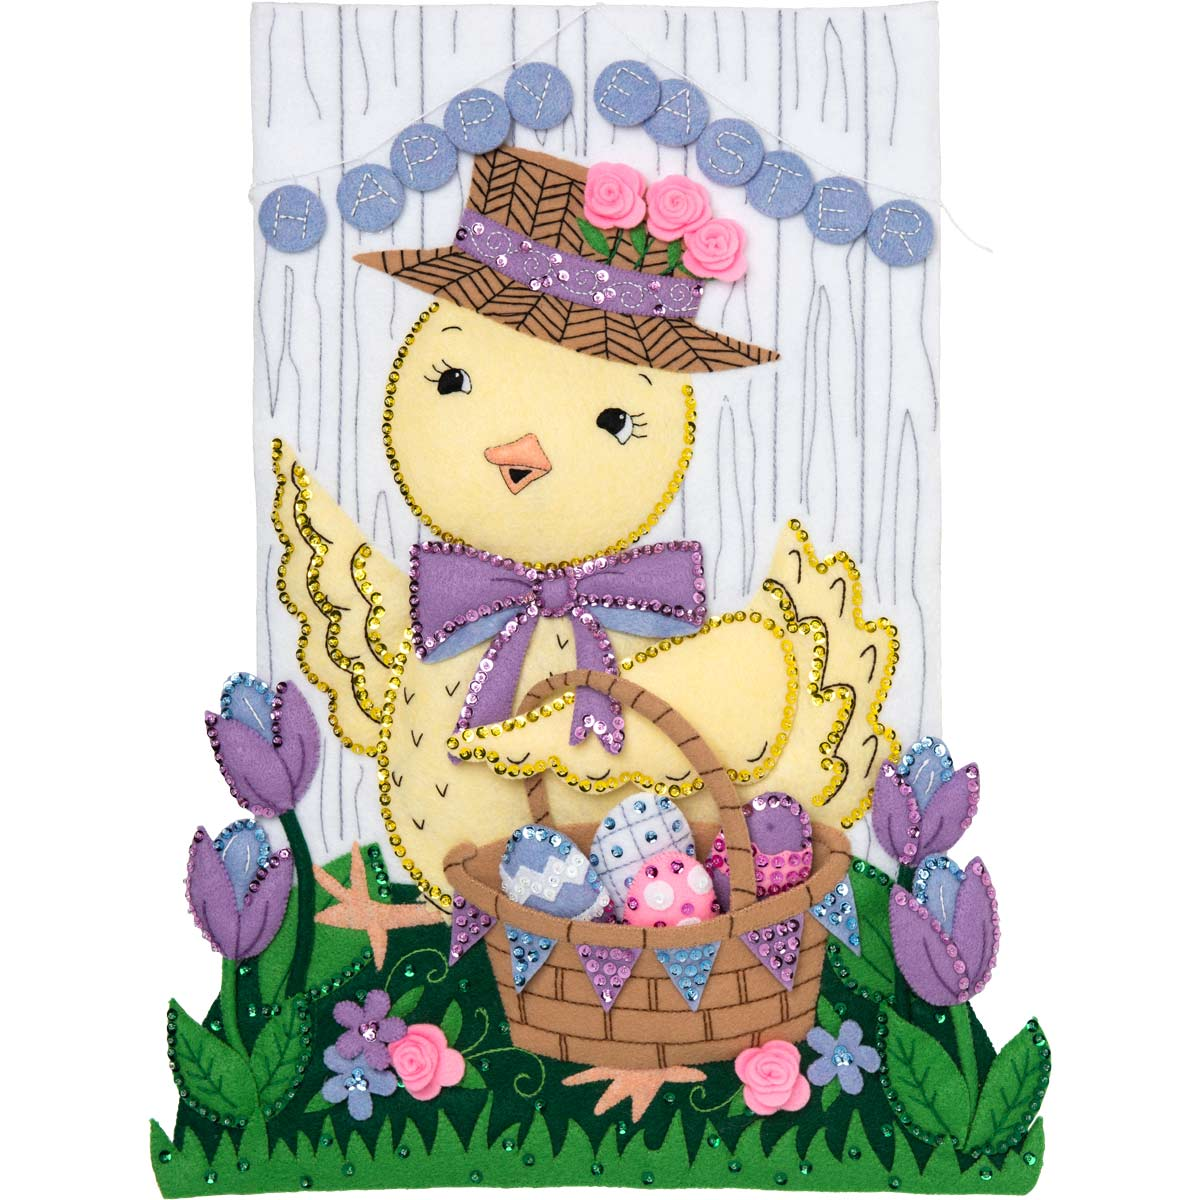 Bucilla ® Seasonal - Felt - Home Decor - Easter Wall Hanging - 86989E